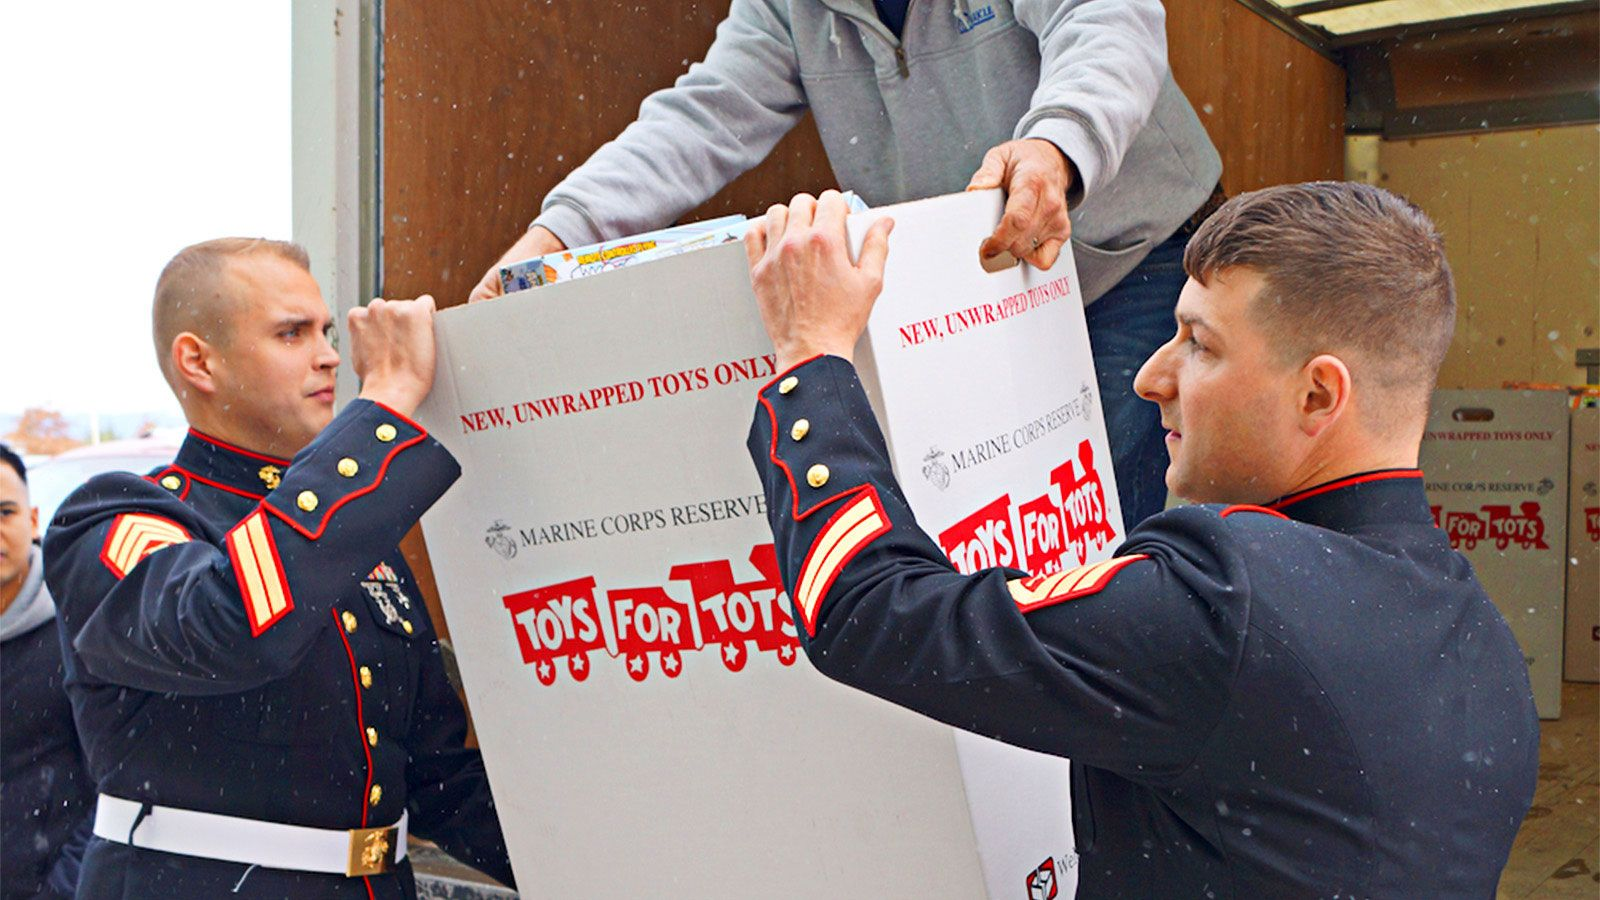 Toys for tots images  The Wyoming PA Toys for Tots campaign covers Bradford Lackawanna